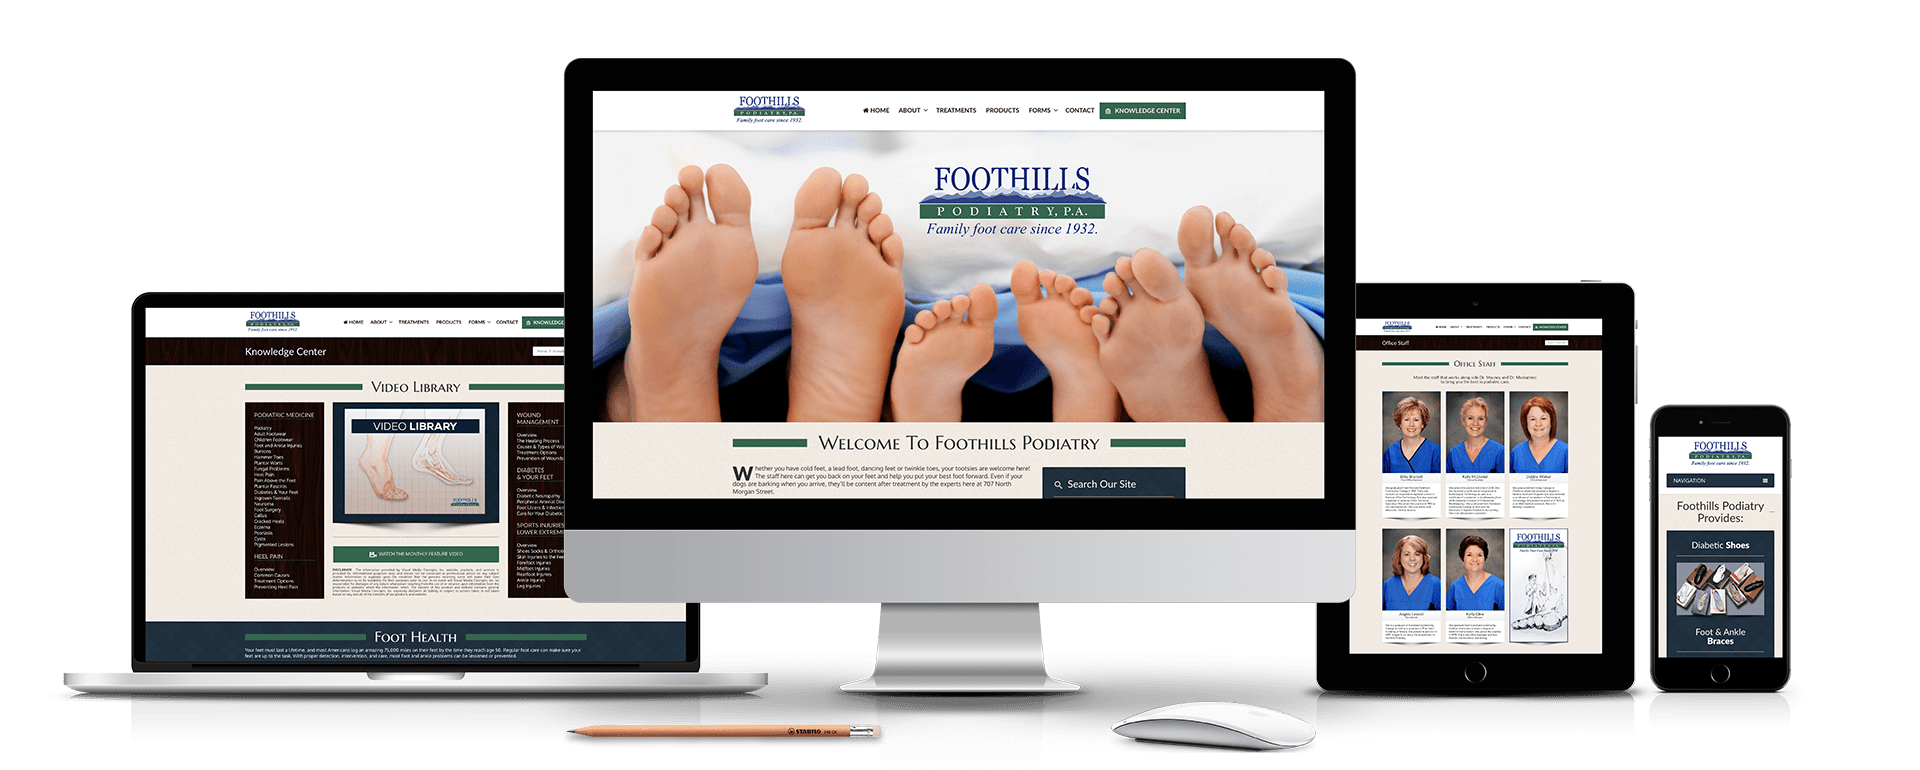 Foothills Podiatry